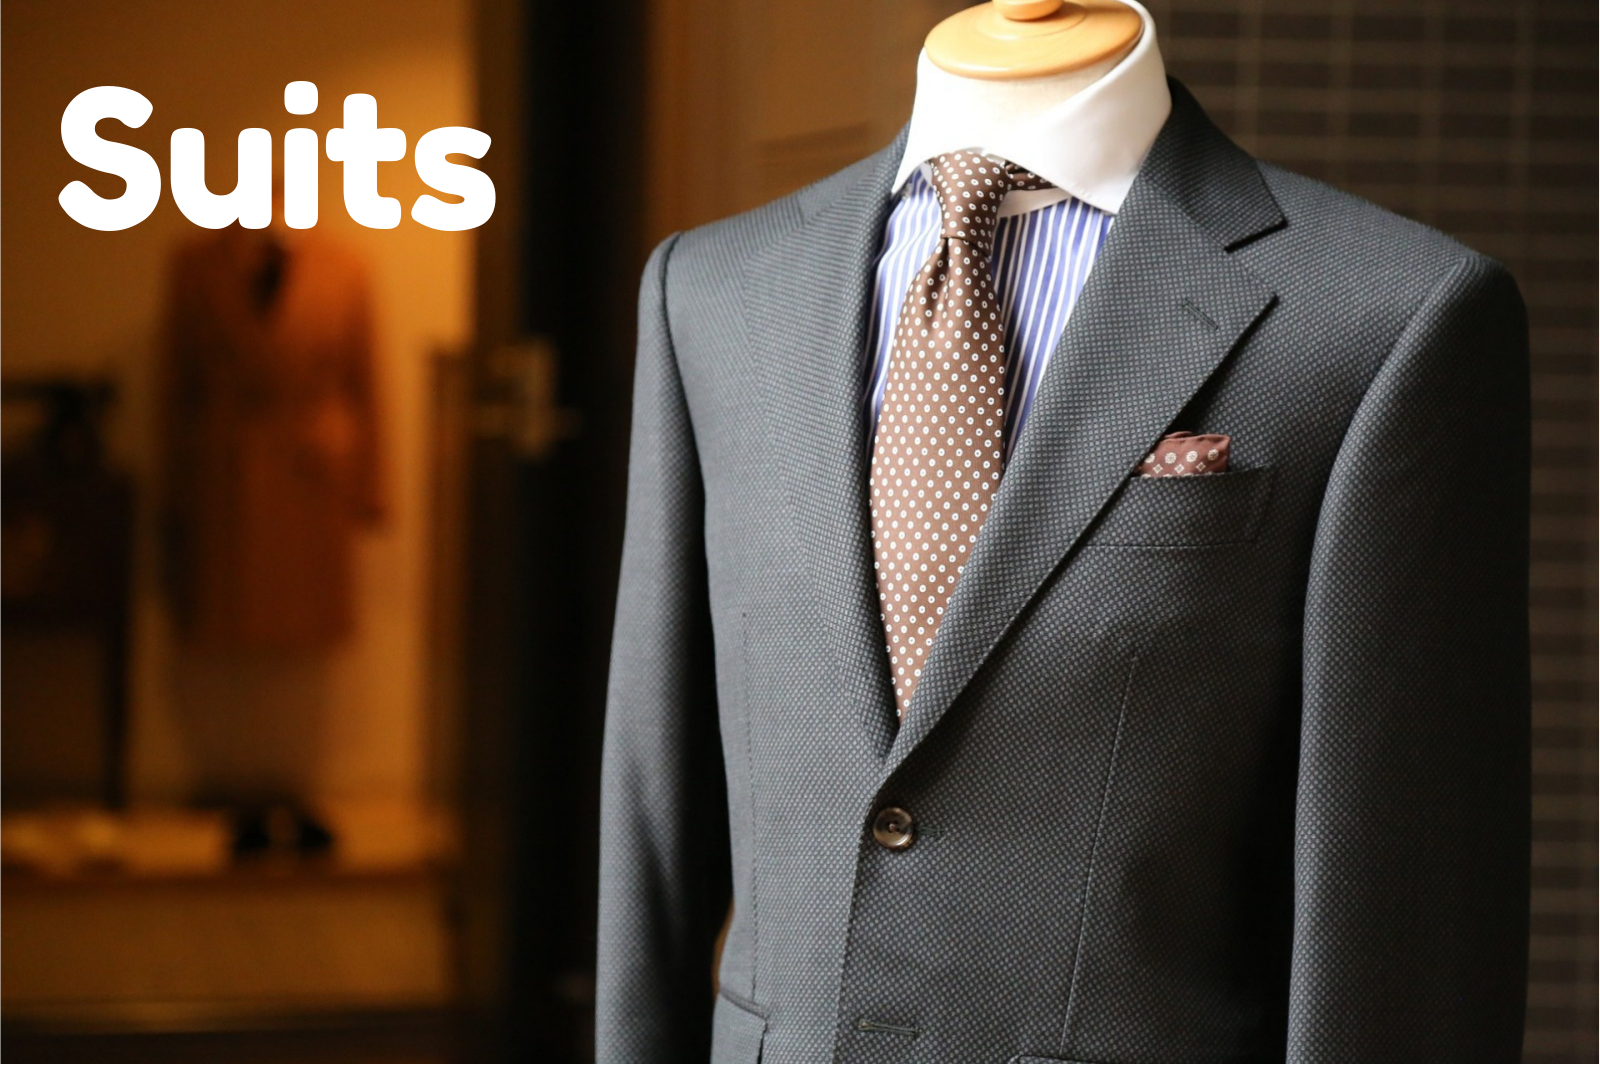 suits, jackets, dinner jackets dry cleaning and laundry